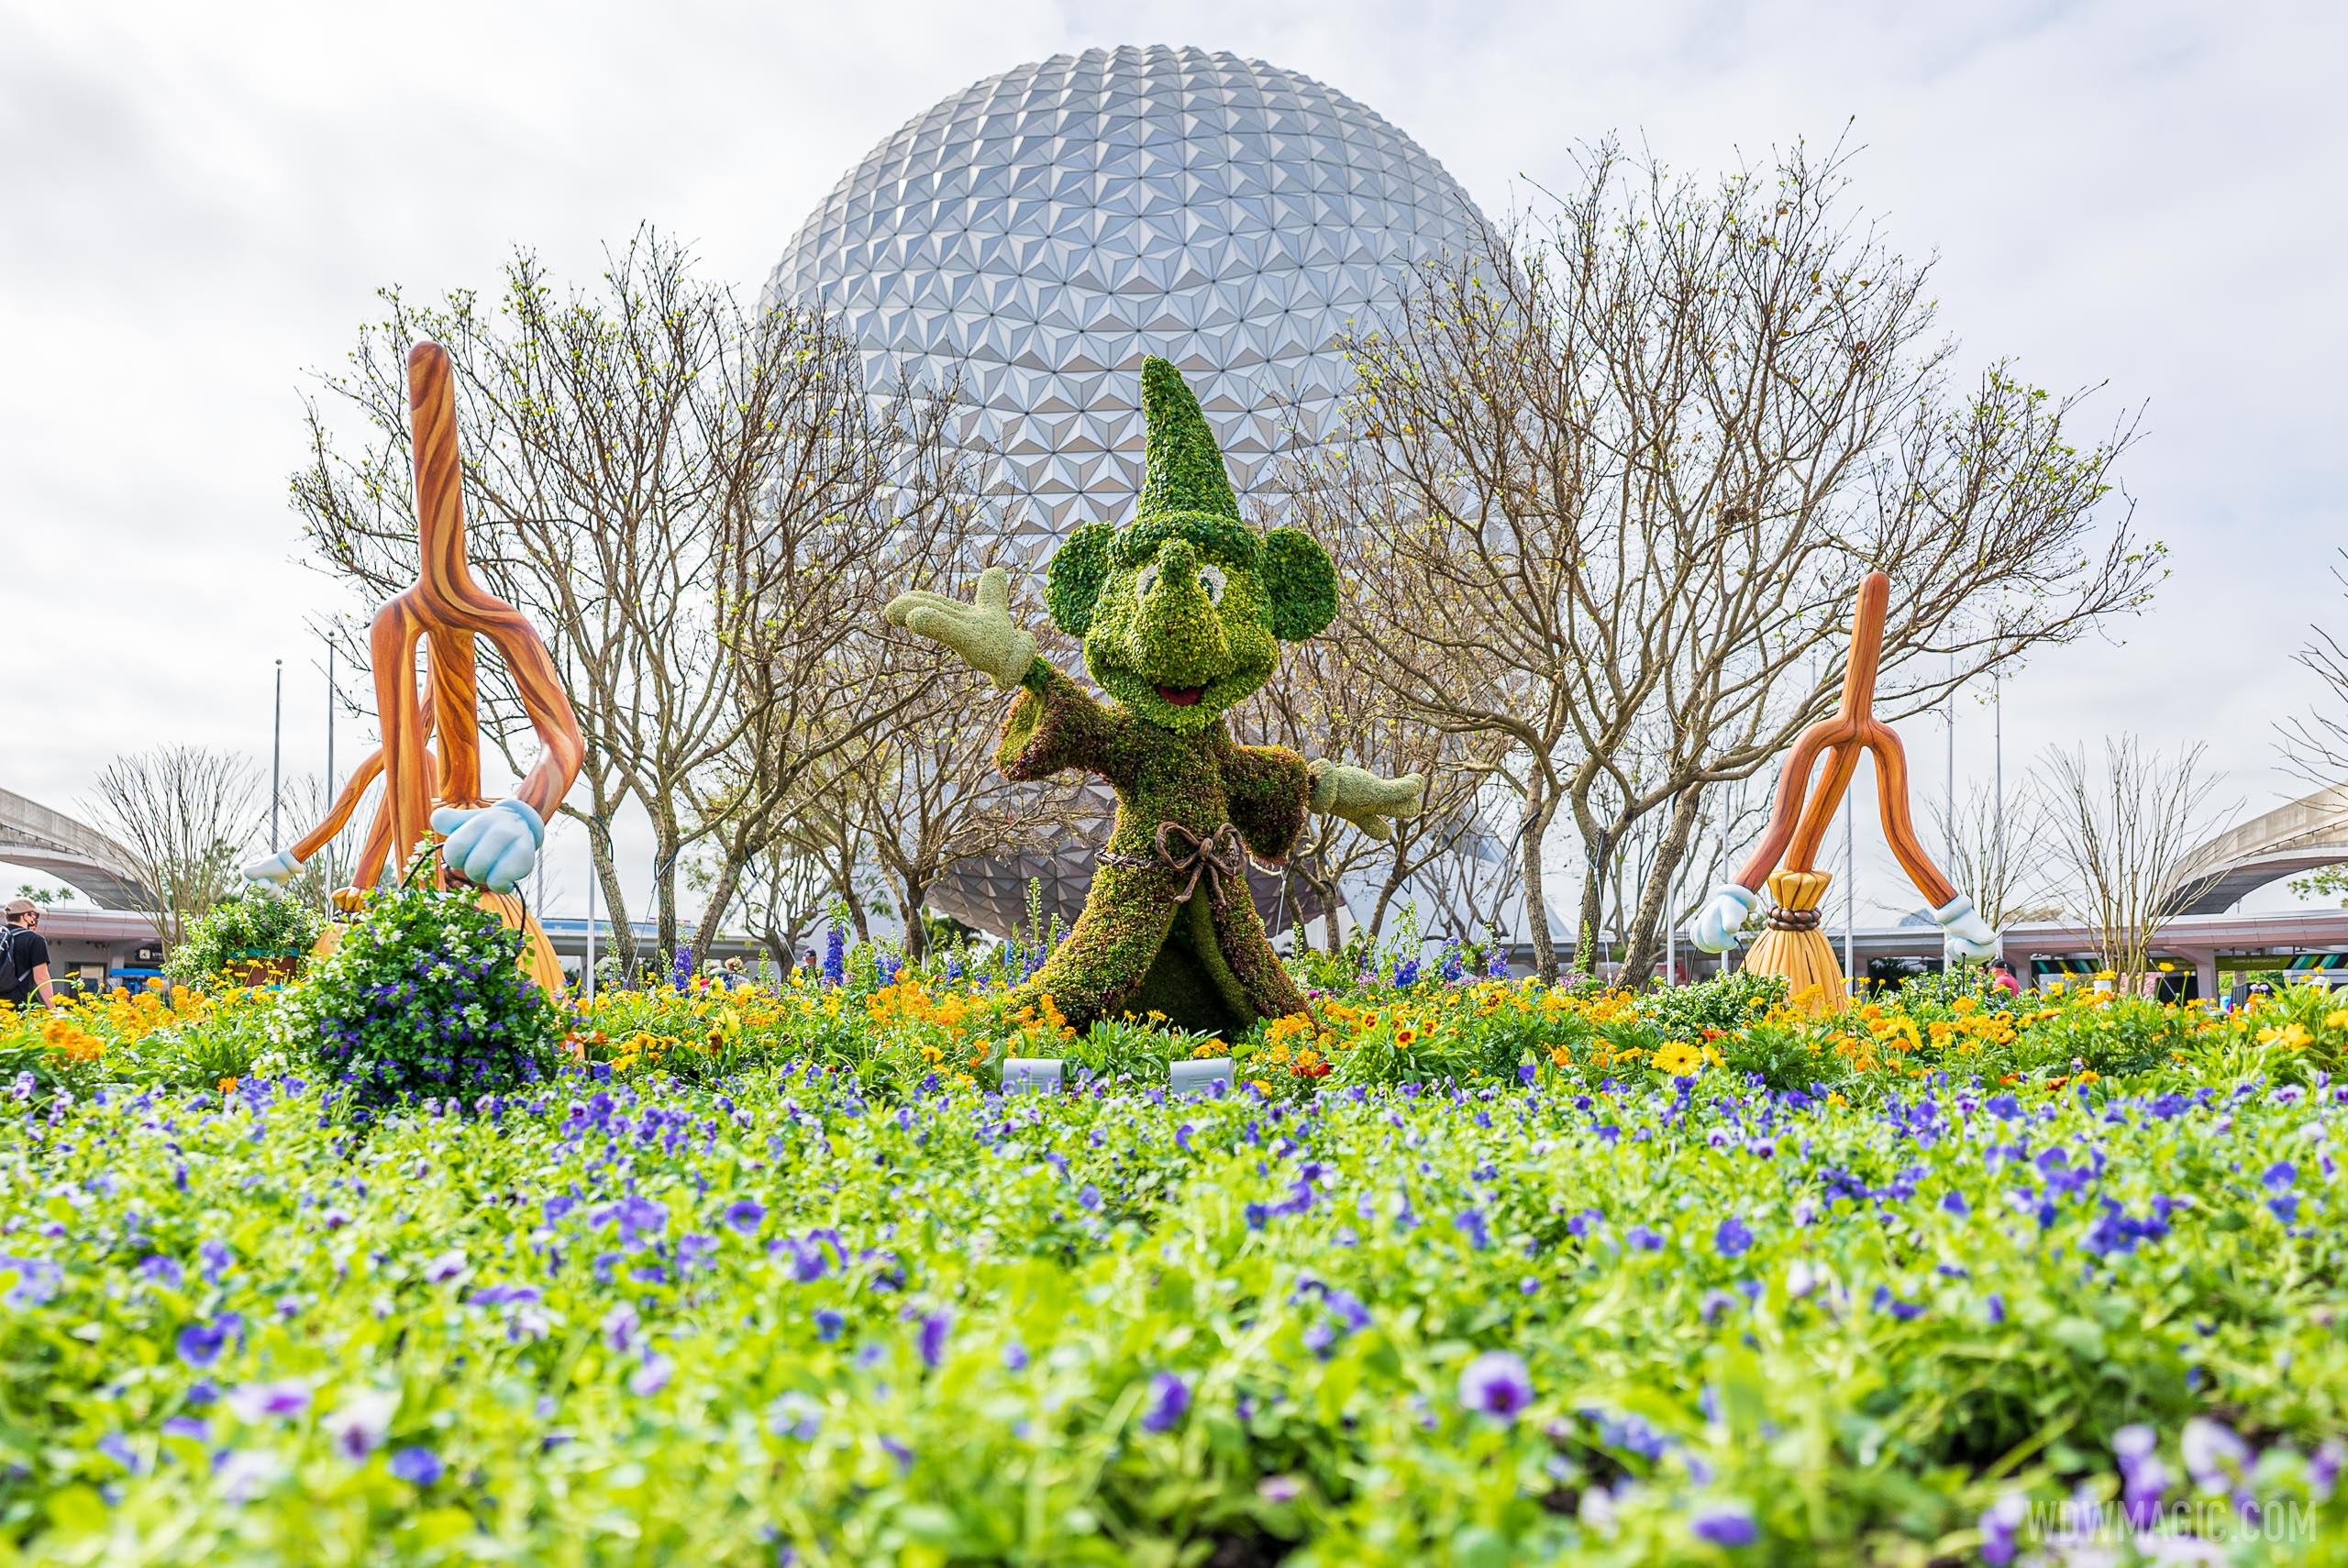 EPCOT main entrance topiary - March 2021